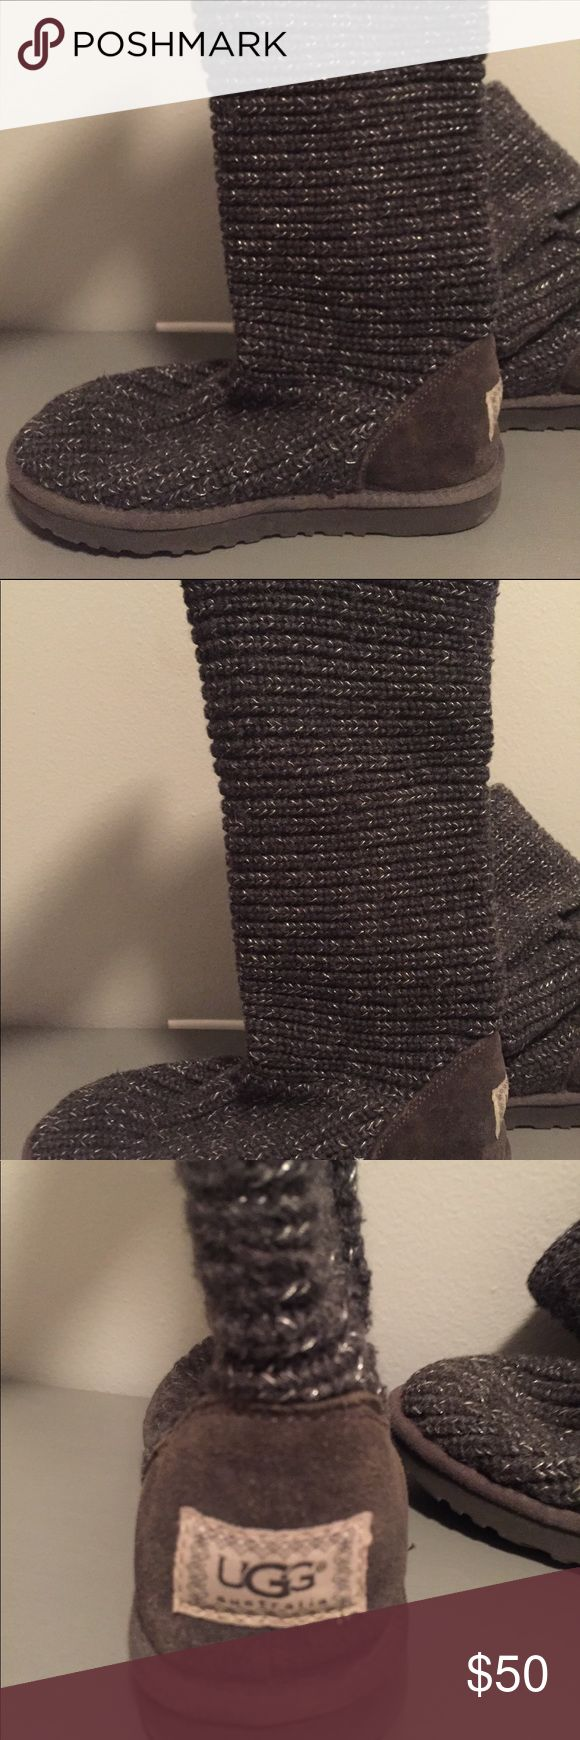 Ugg Boots Tall Grey Knit Tall grey and silver knit ugg boats, size 8 UGG Shoes Winter & Rain Boots